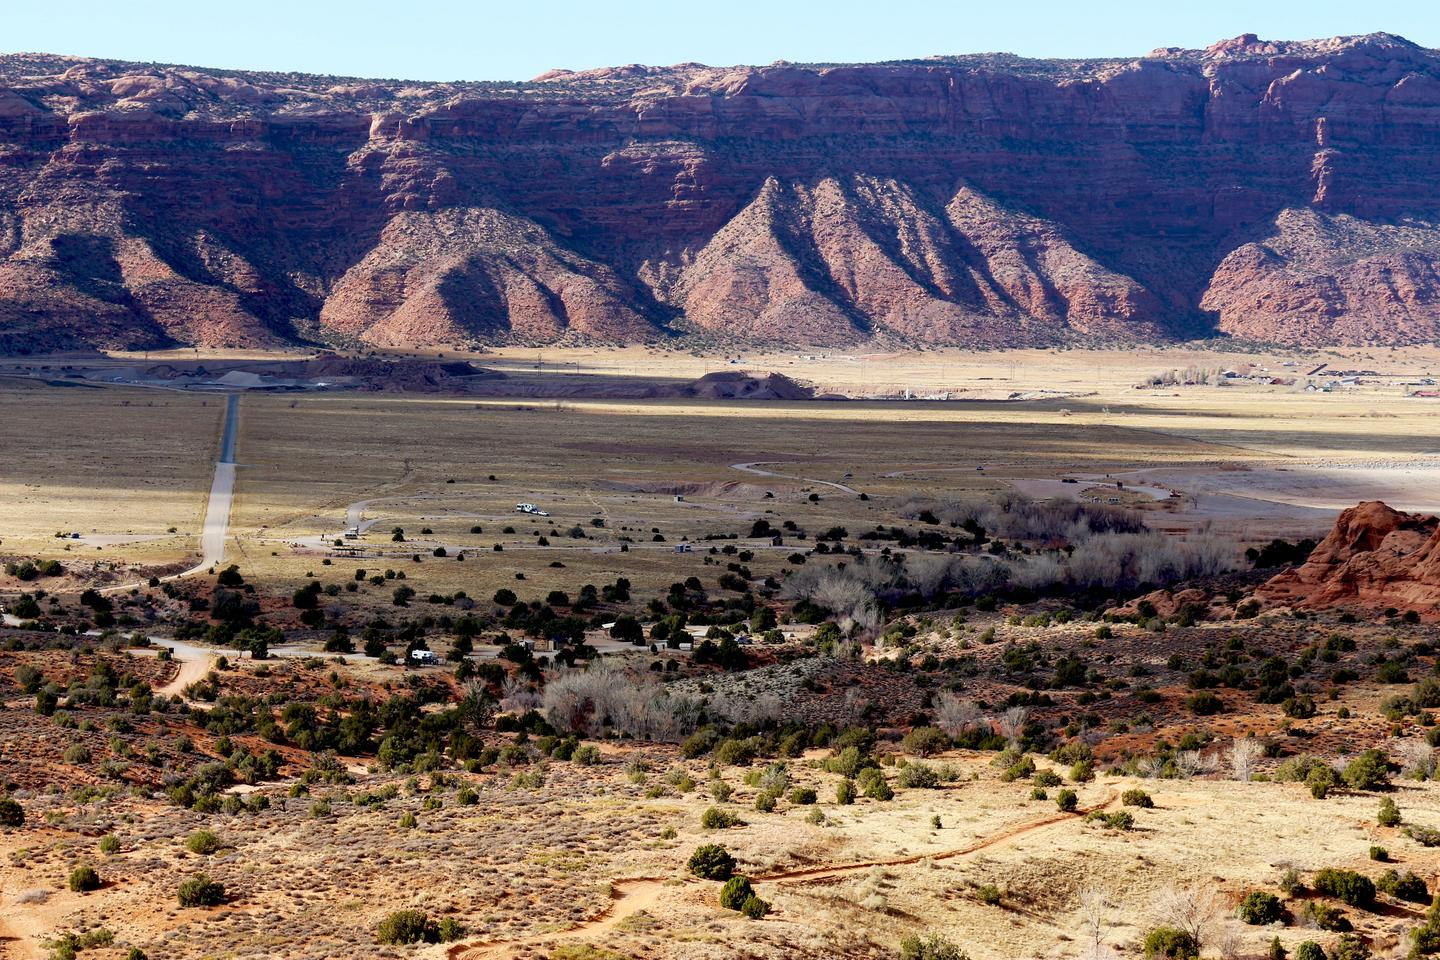 Overview of Ken's Lake Campground with desert cliffs in the background.